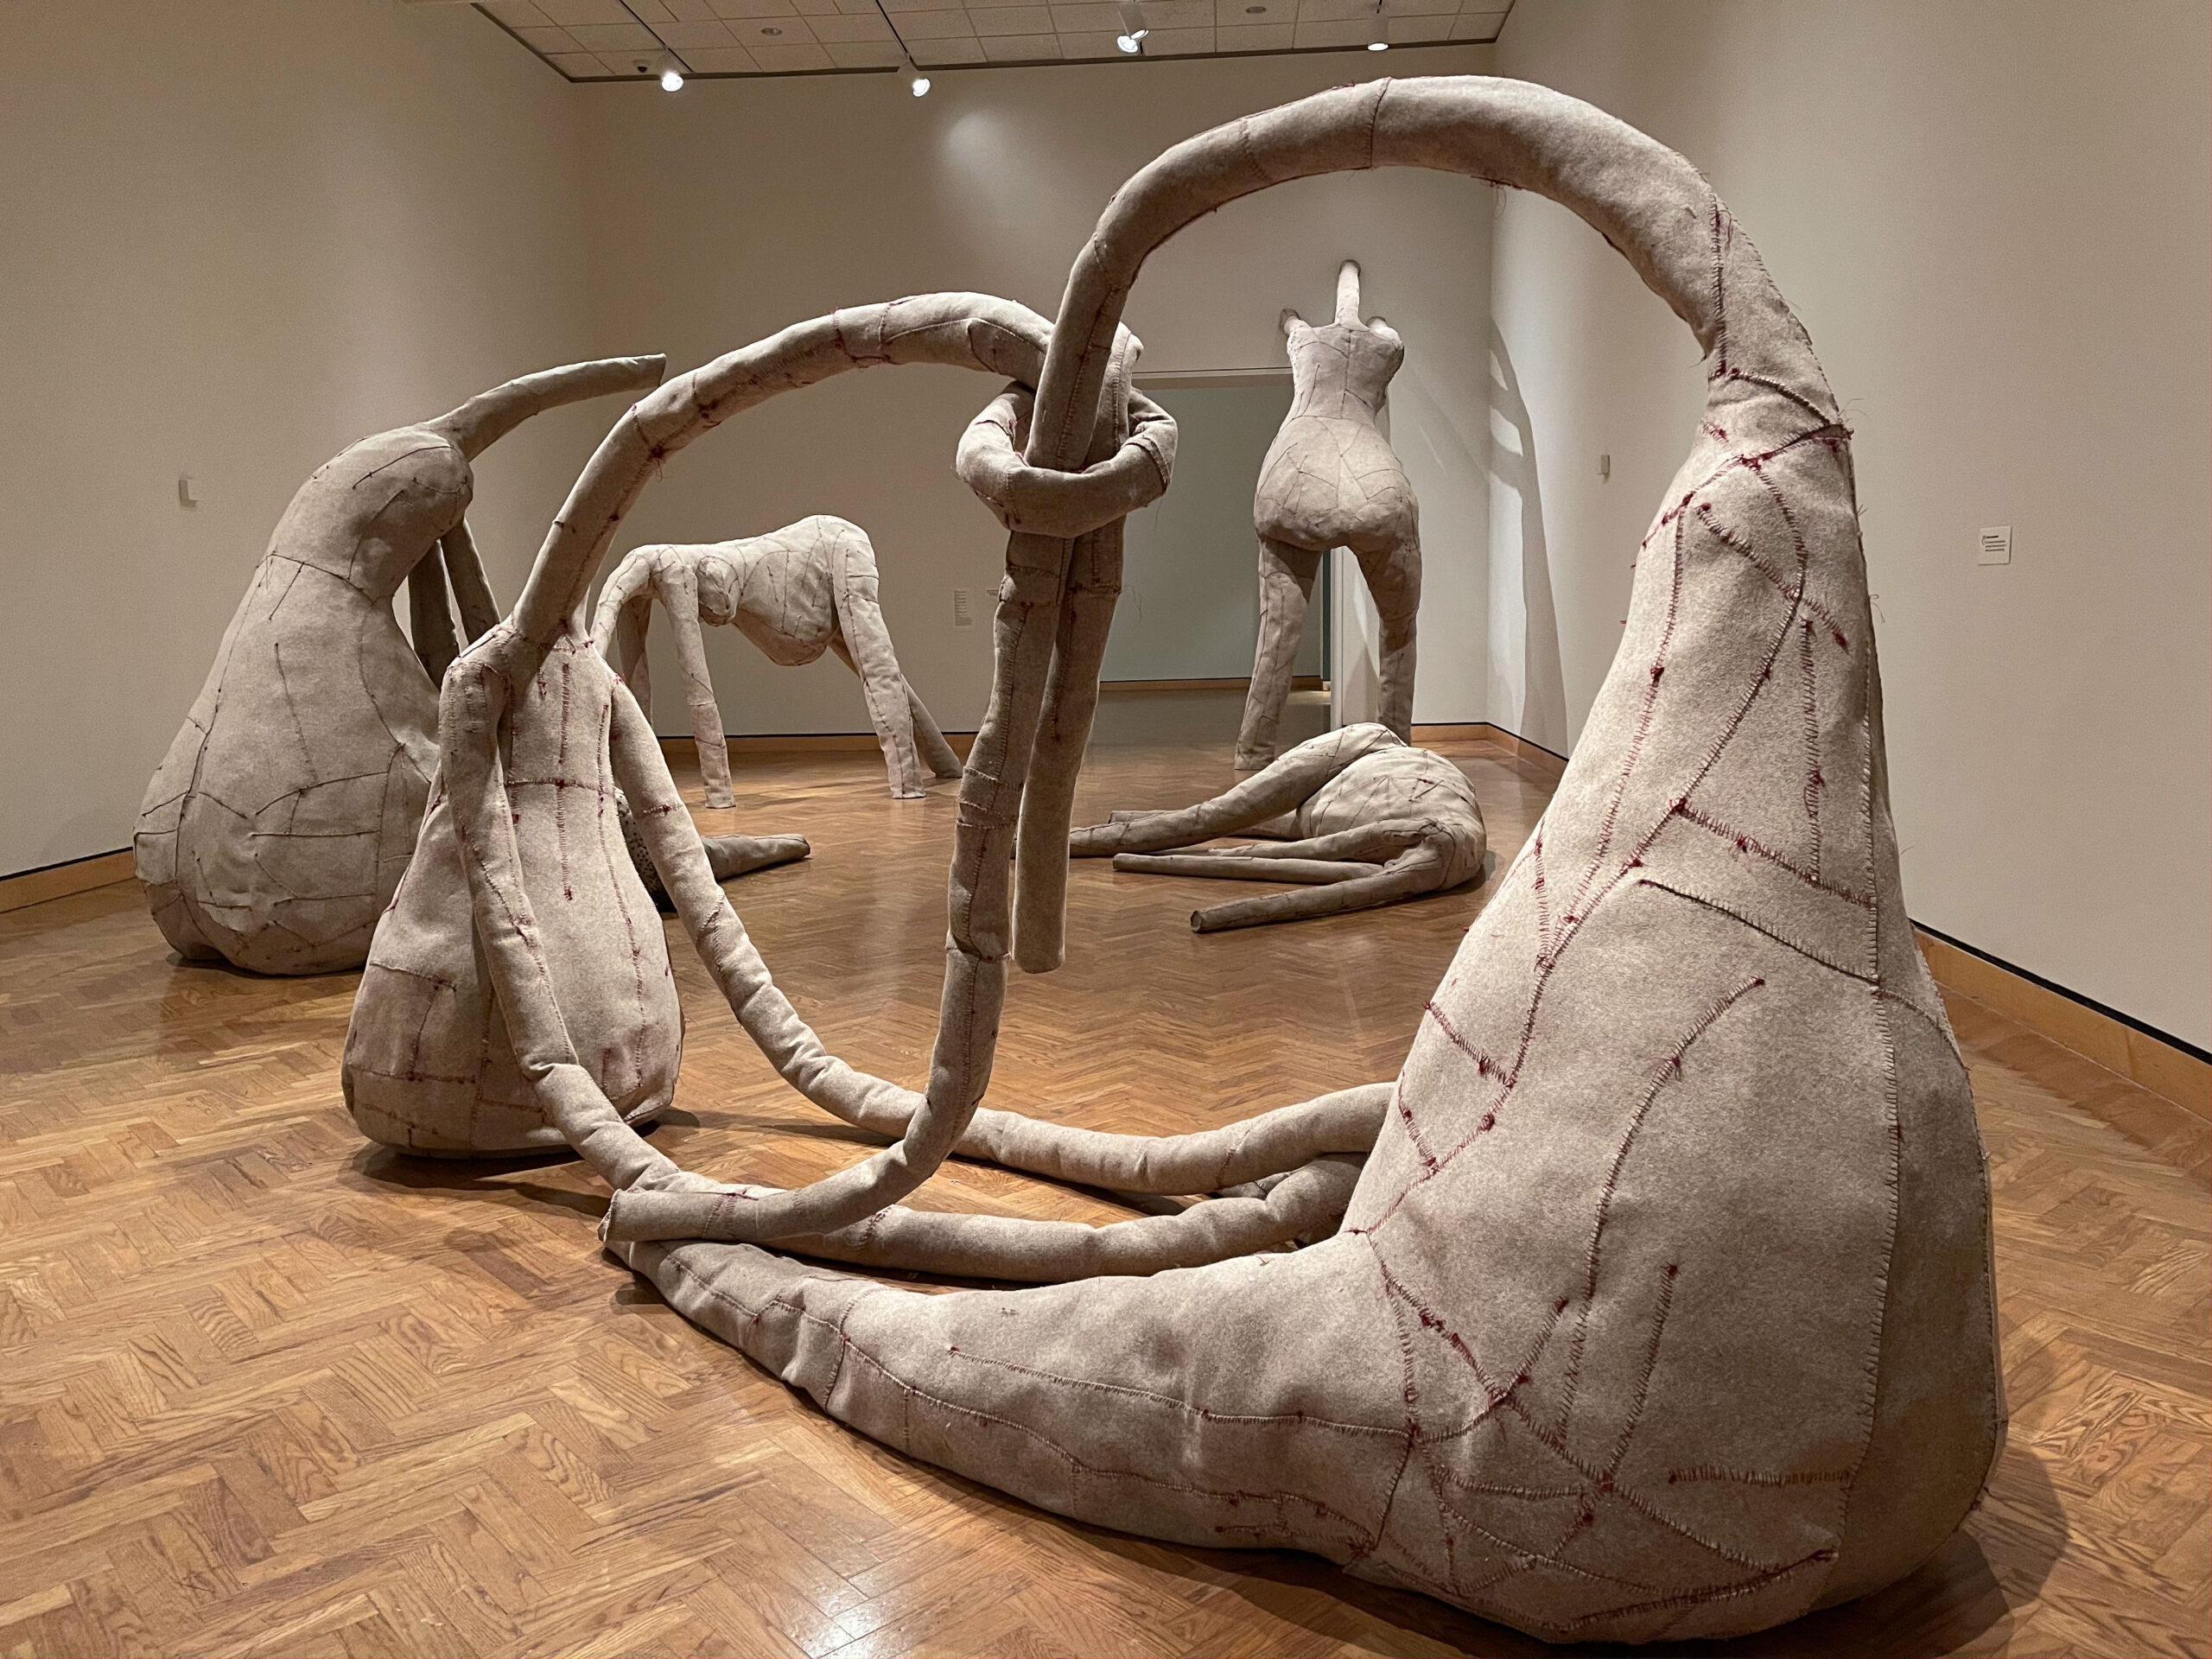 Group of gray felt figurative sculptures